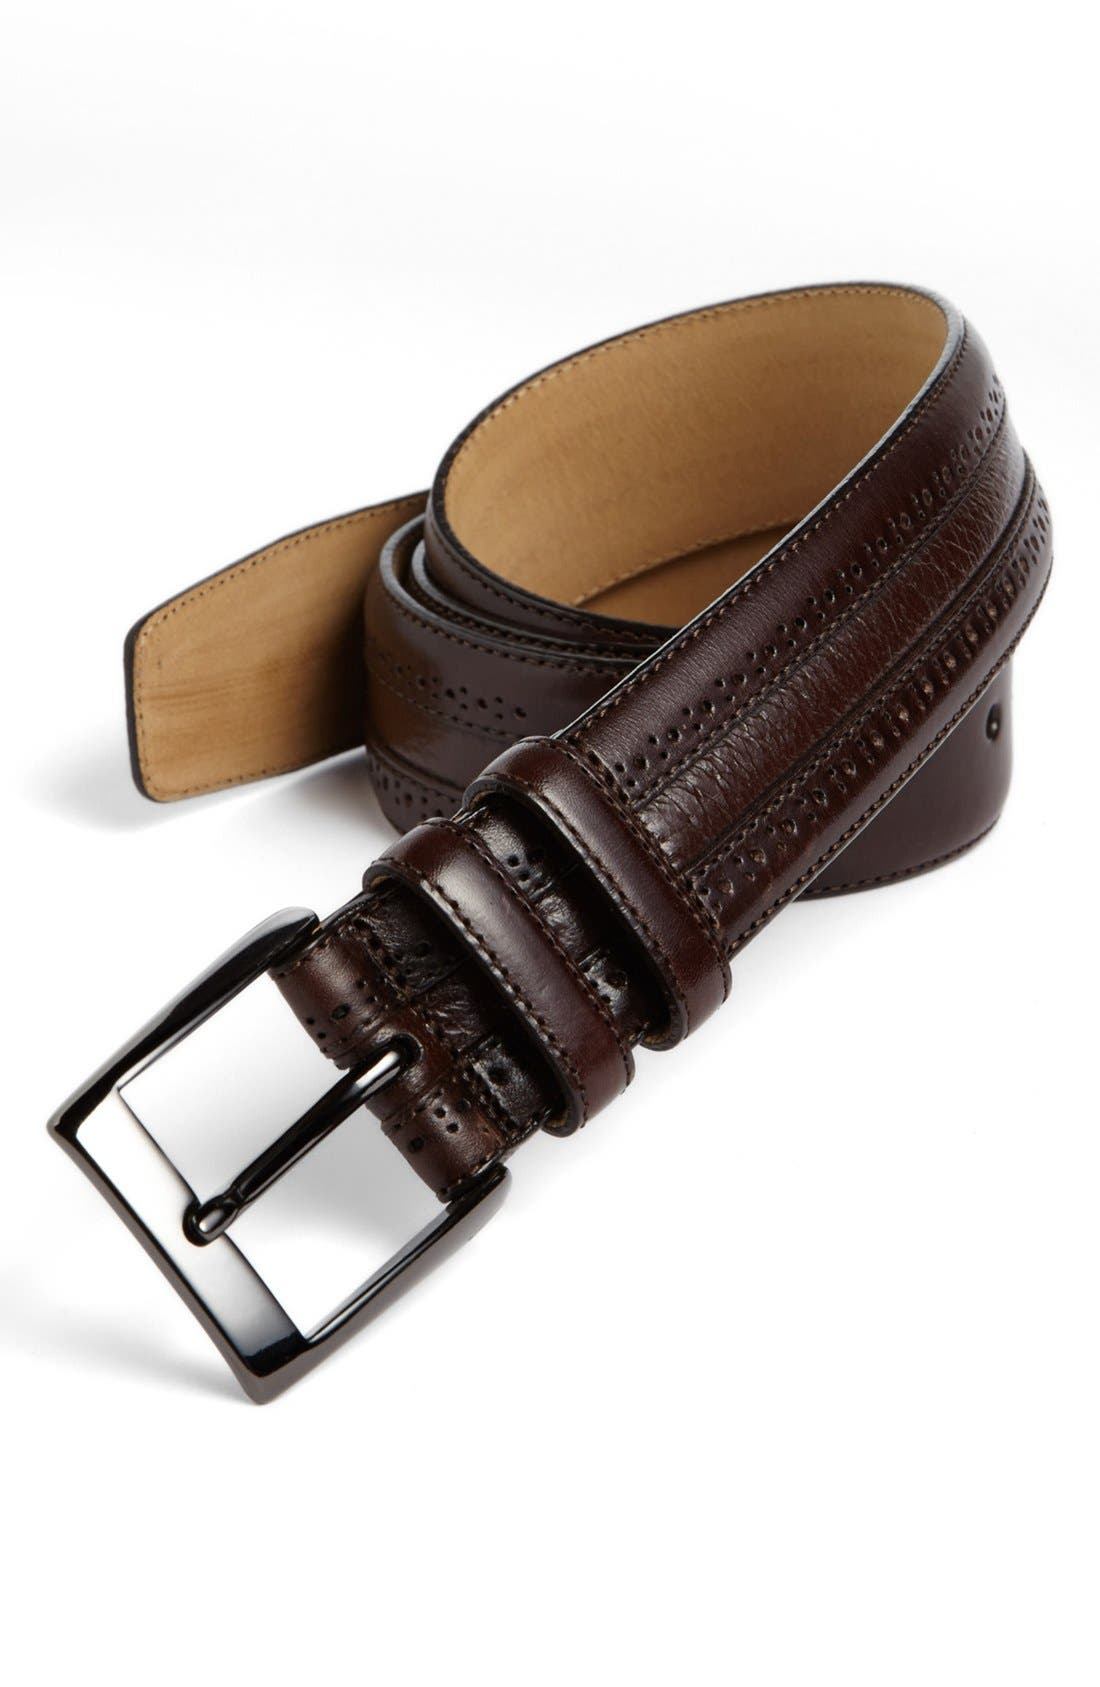 Main Image - Mezlan 'Vaqueta' Leather Belt